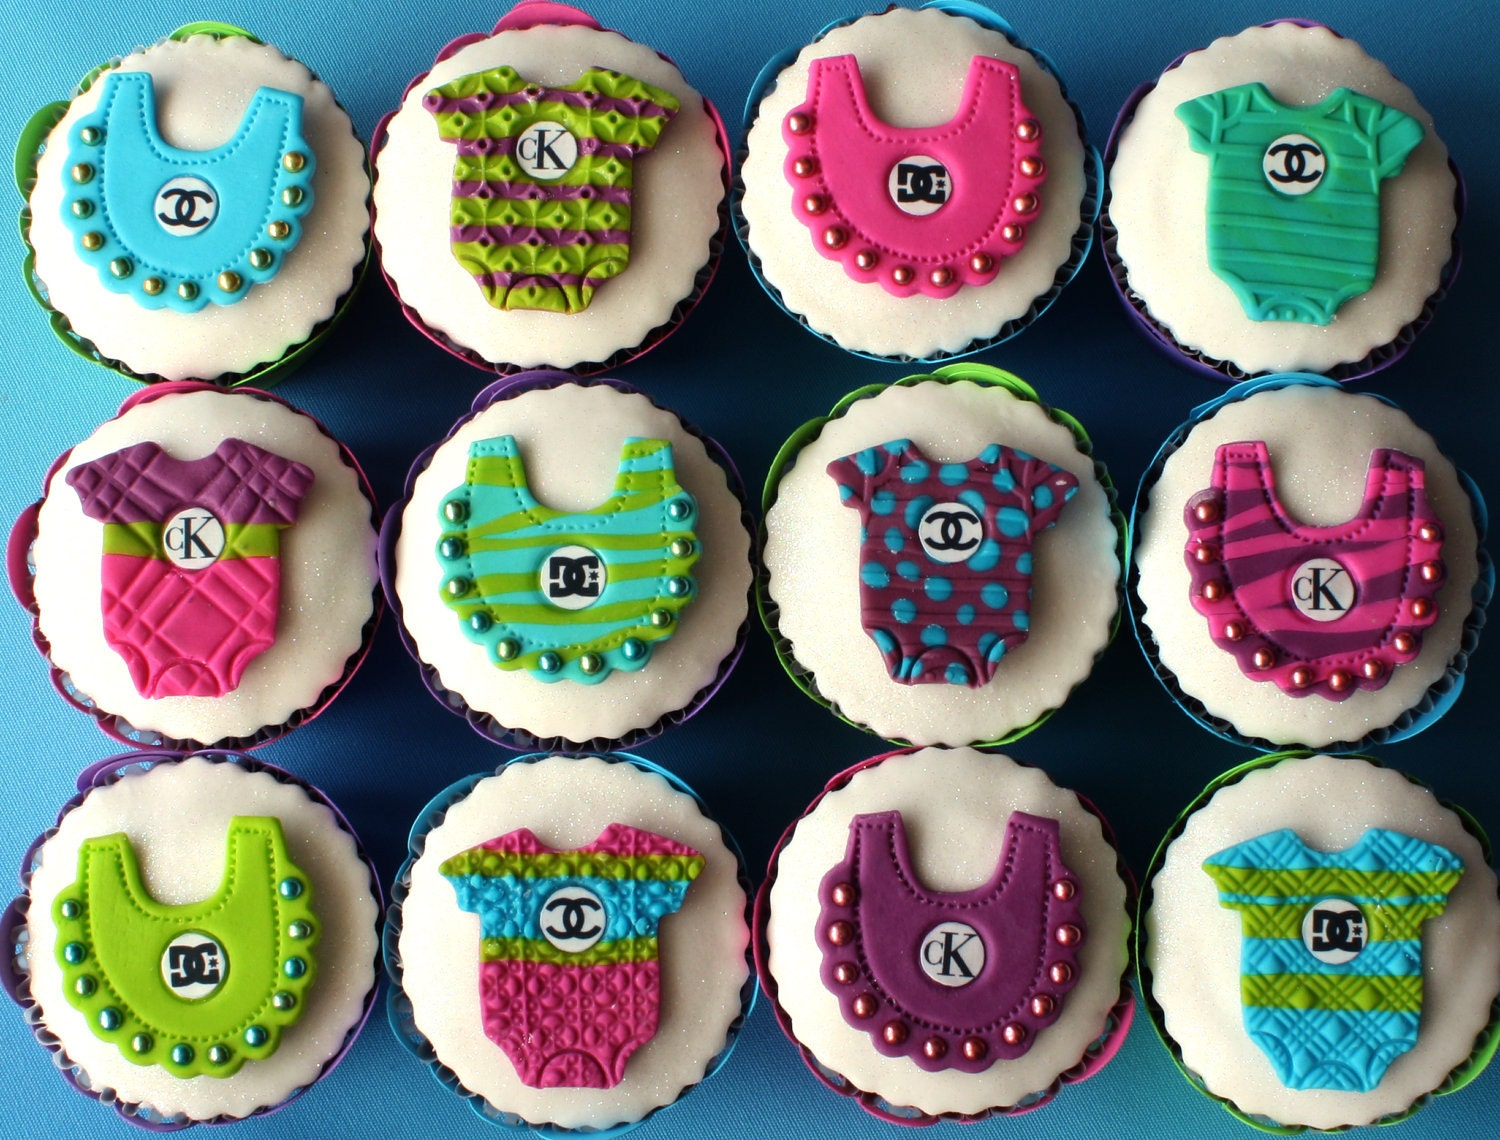 Edible Cake Decorations Boy : Cupcake Toppers. Baby Boy Girl Fashion Edible Cake Decorations